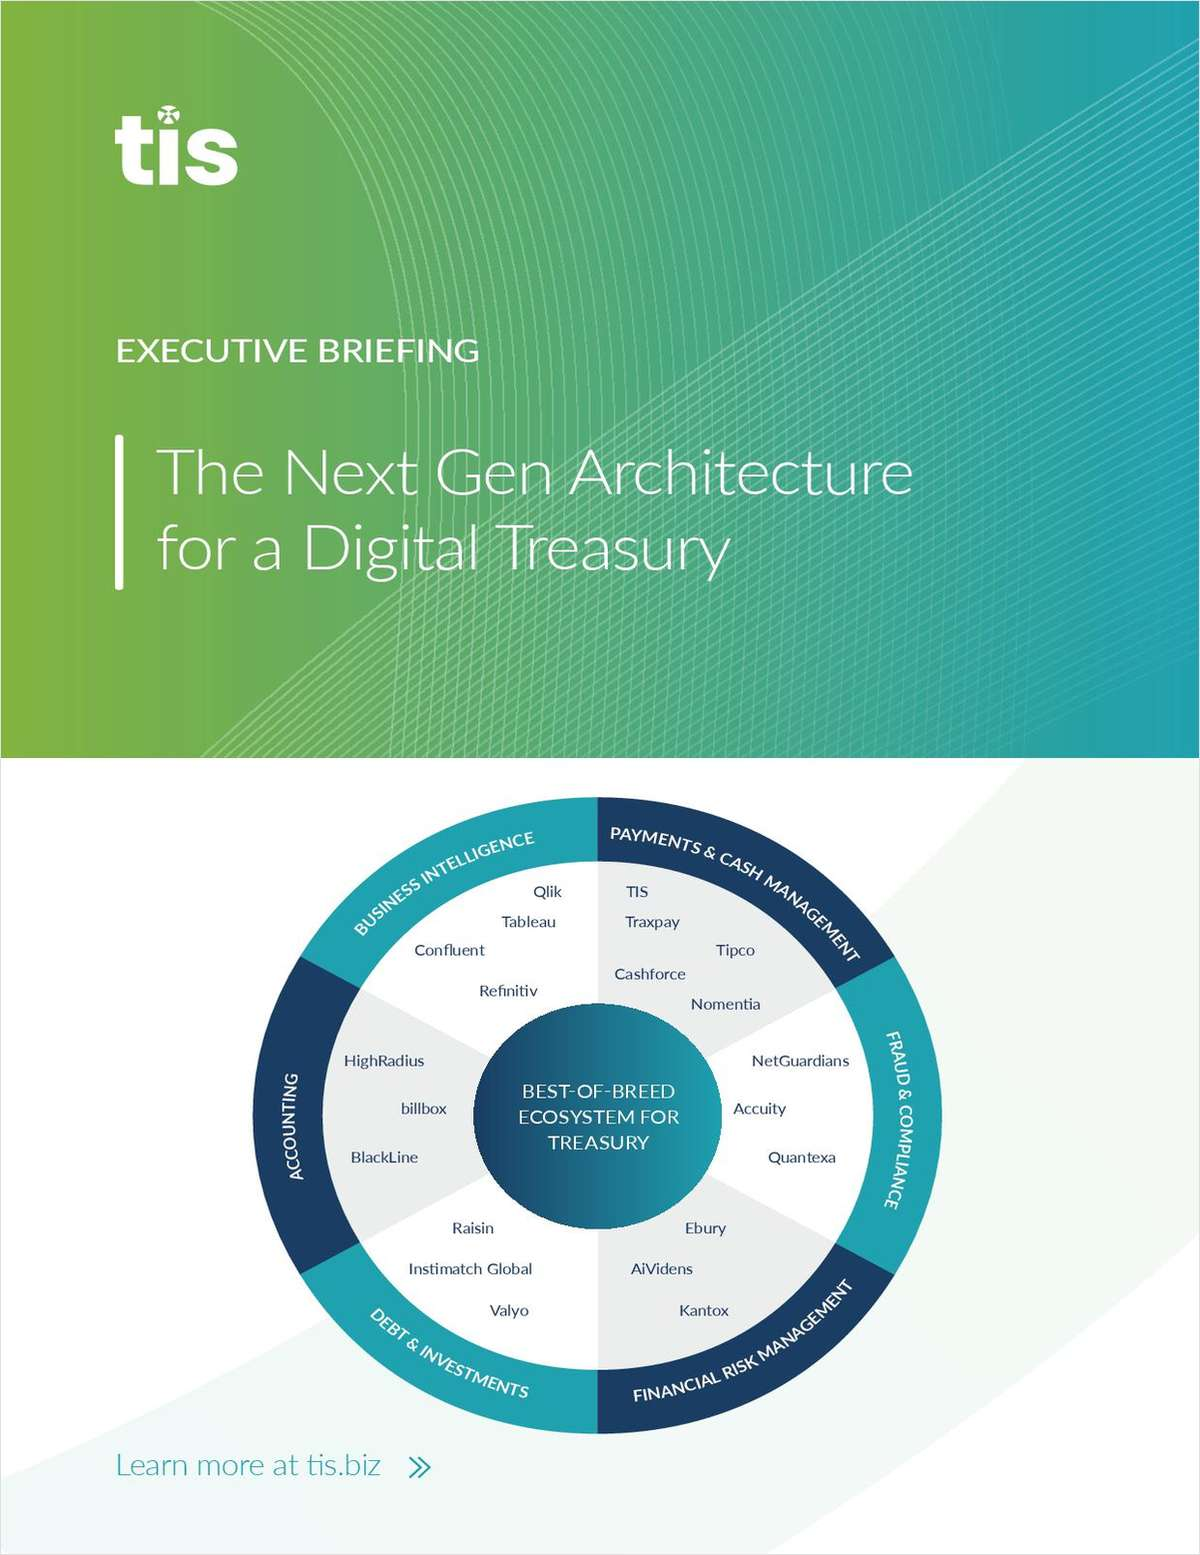 Next Gen Architecture for a Digital Treasury: Enabling Flexibility and Automation